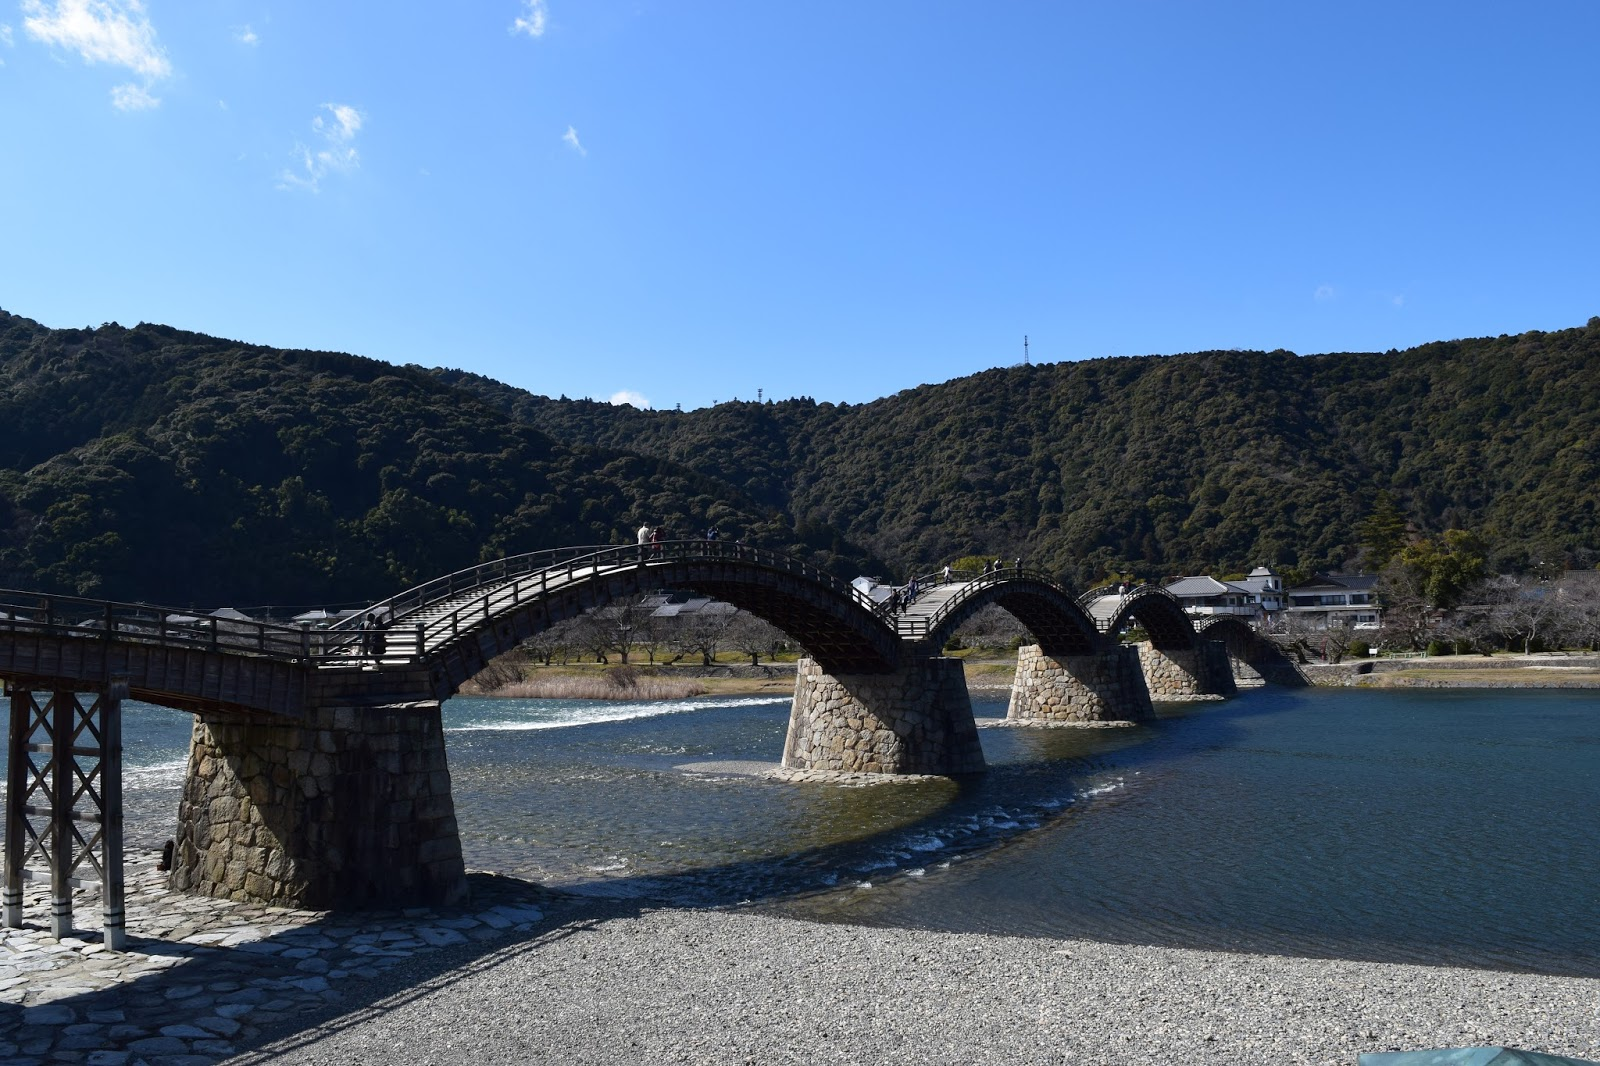 Kintaikyo bridge Iwakuni